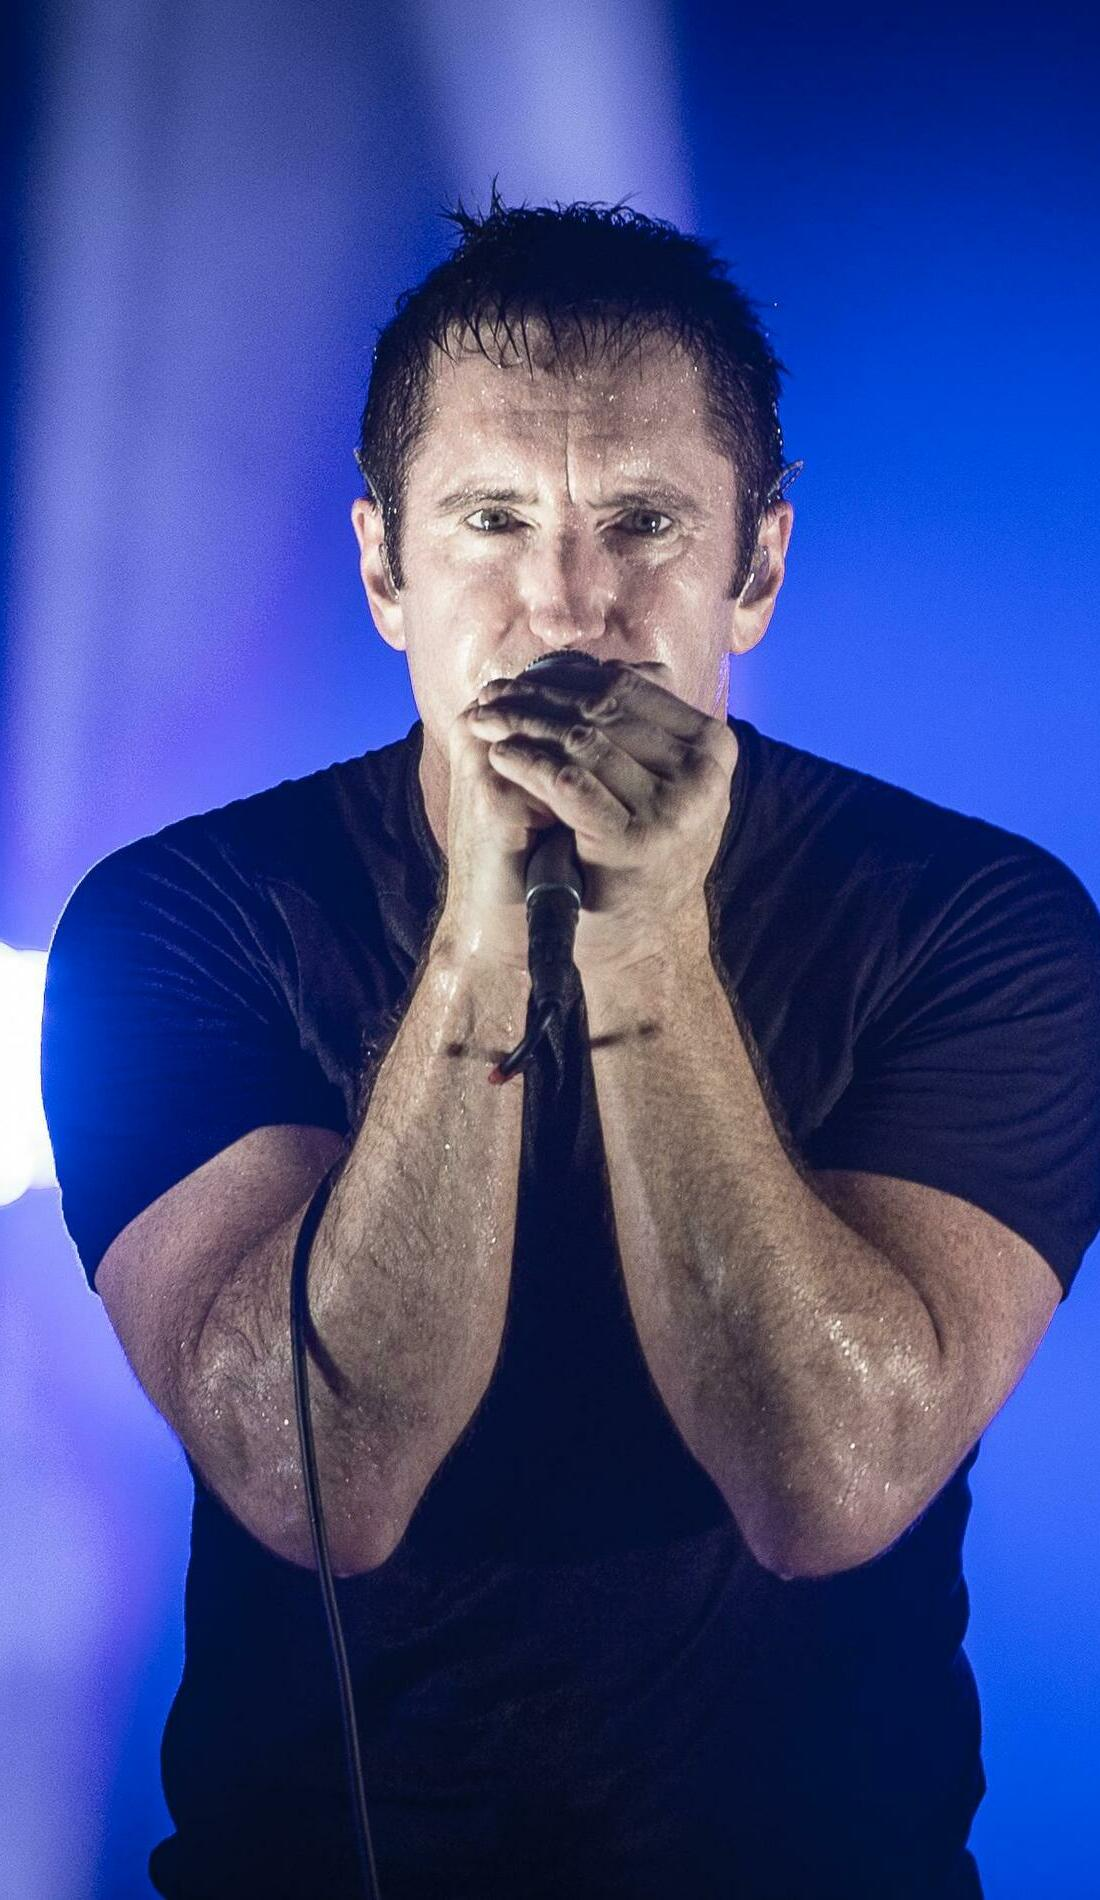 A Nine Inch Nails live event